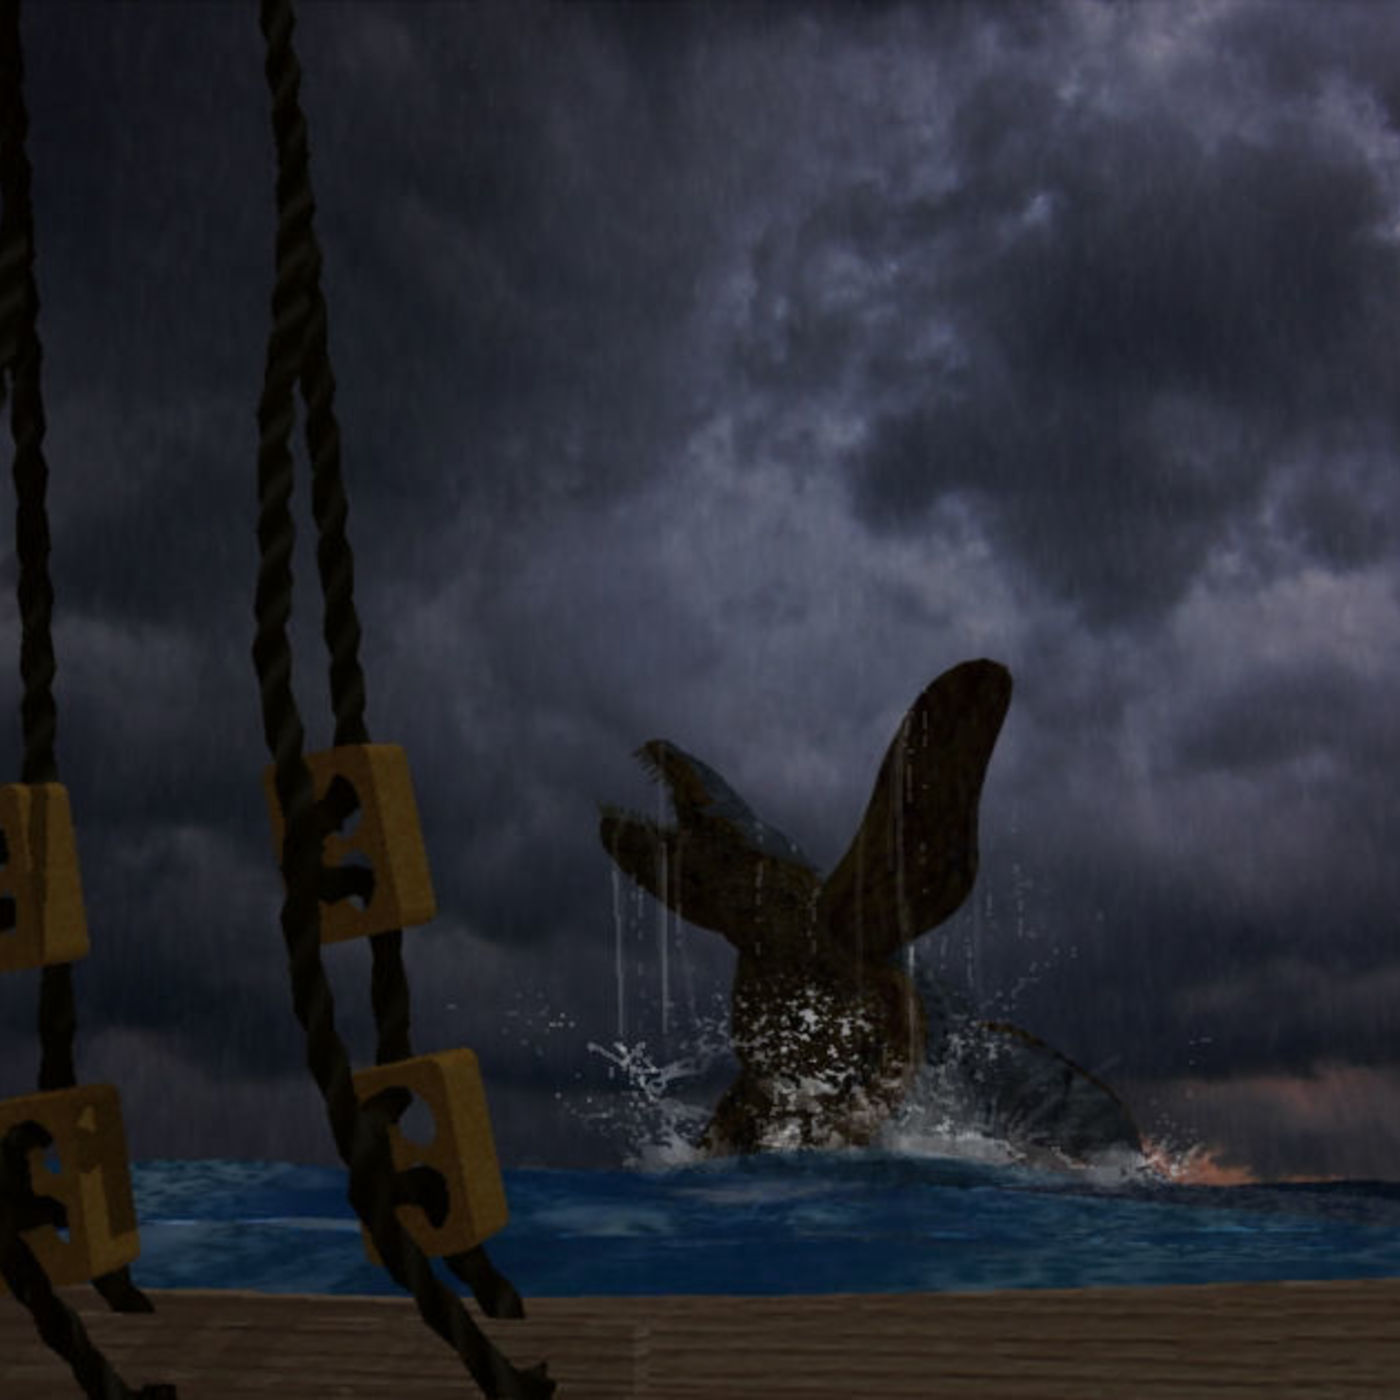 A not so quite night at sea on Planet Archipelago